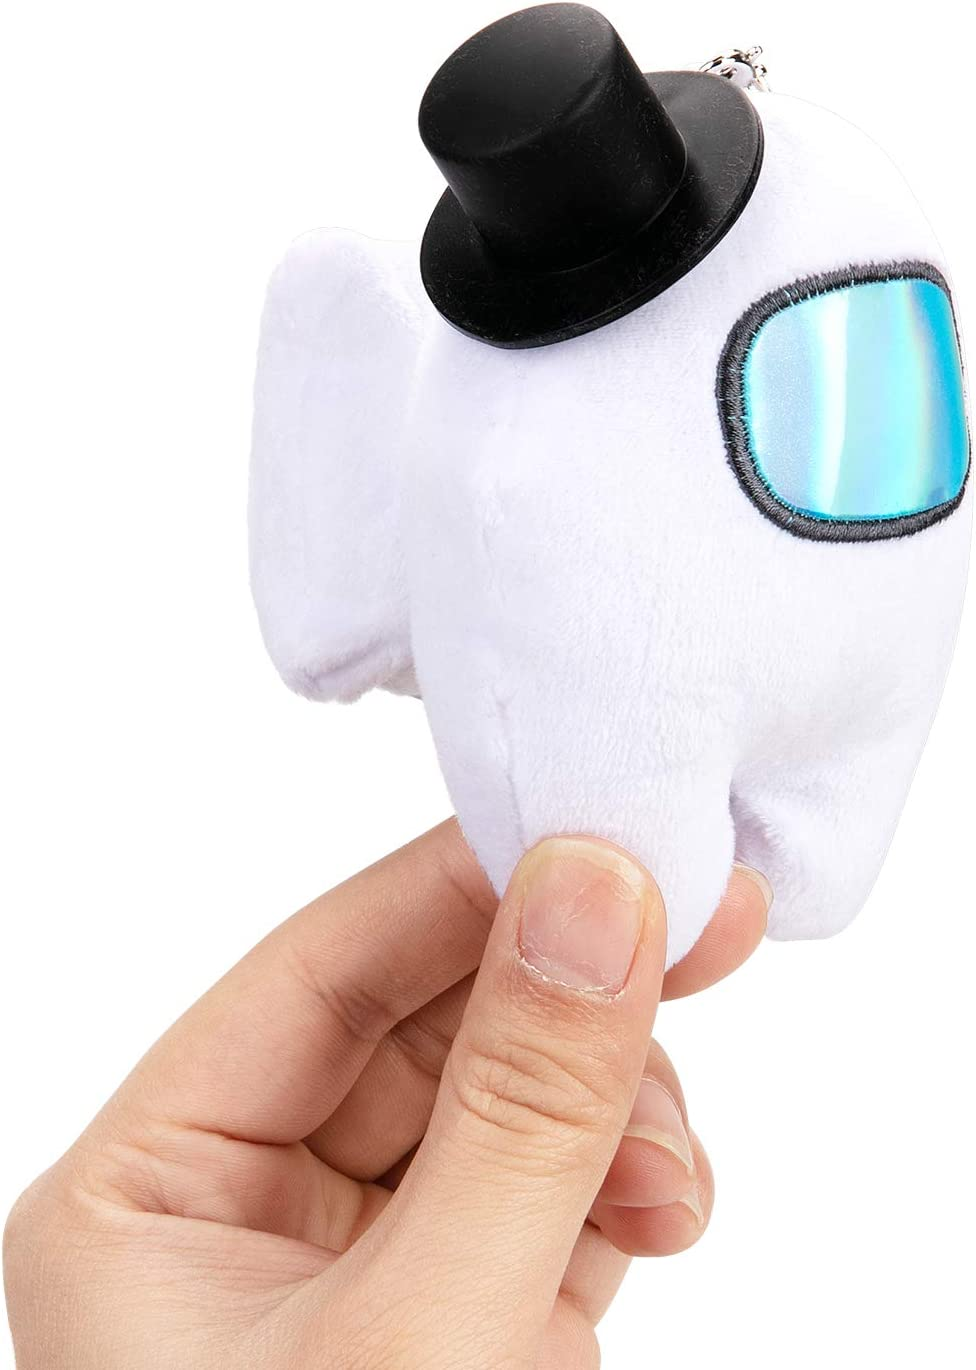 Among Plush Soft Toy Pack of 1 Small Adorable Doll Toy Gift Cyan Cute Astronaut Stuffed Plush Figures Plushiest Gifts for Game Fans 3.6 Inch